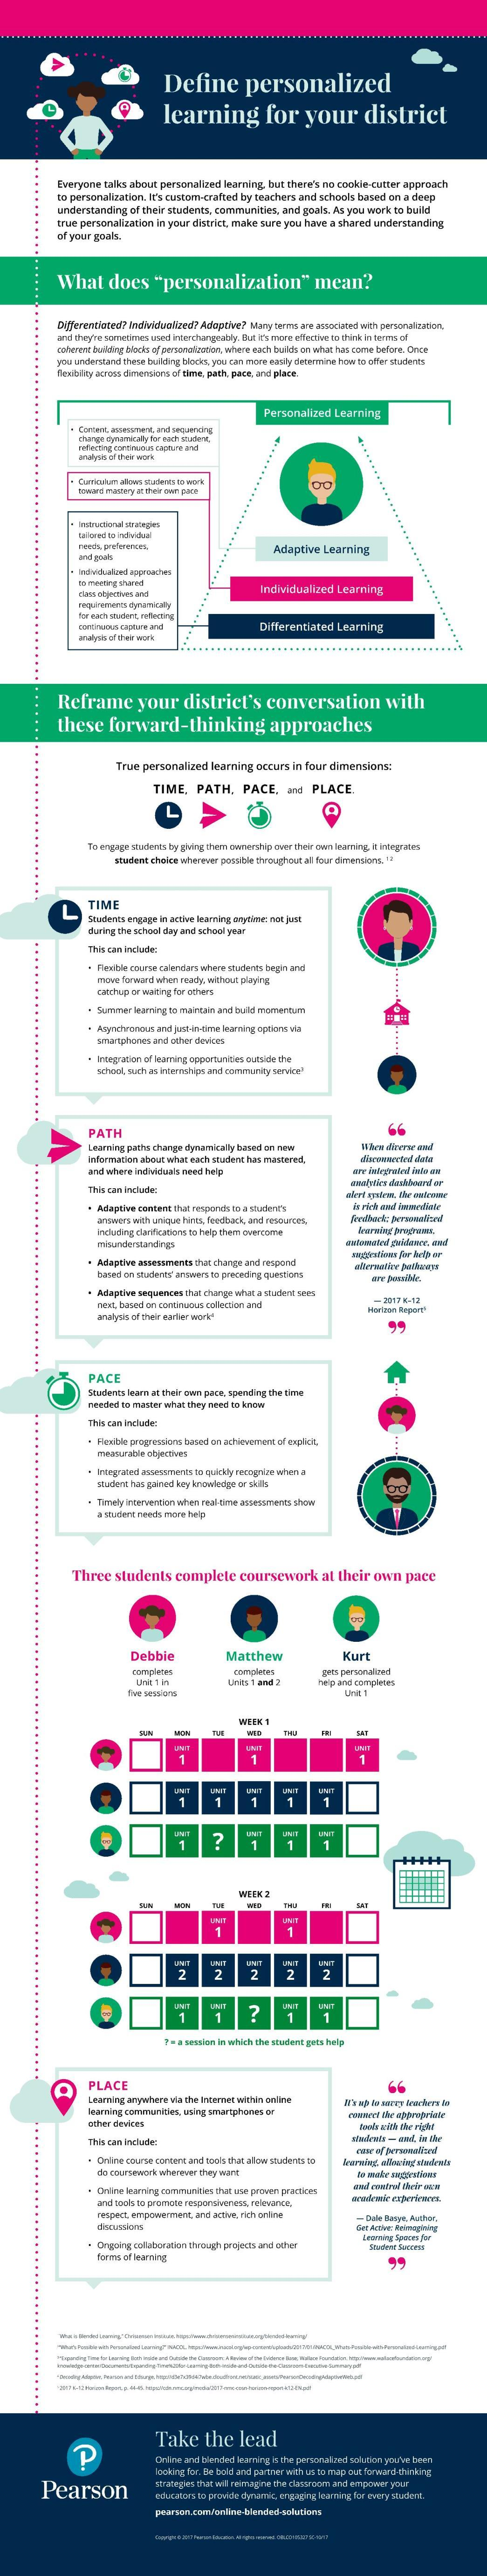 Defining Personalized Learning for Your District Infographic